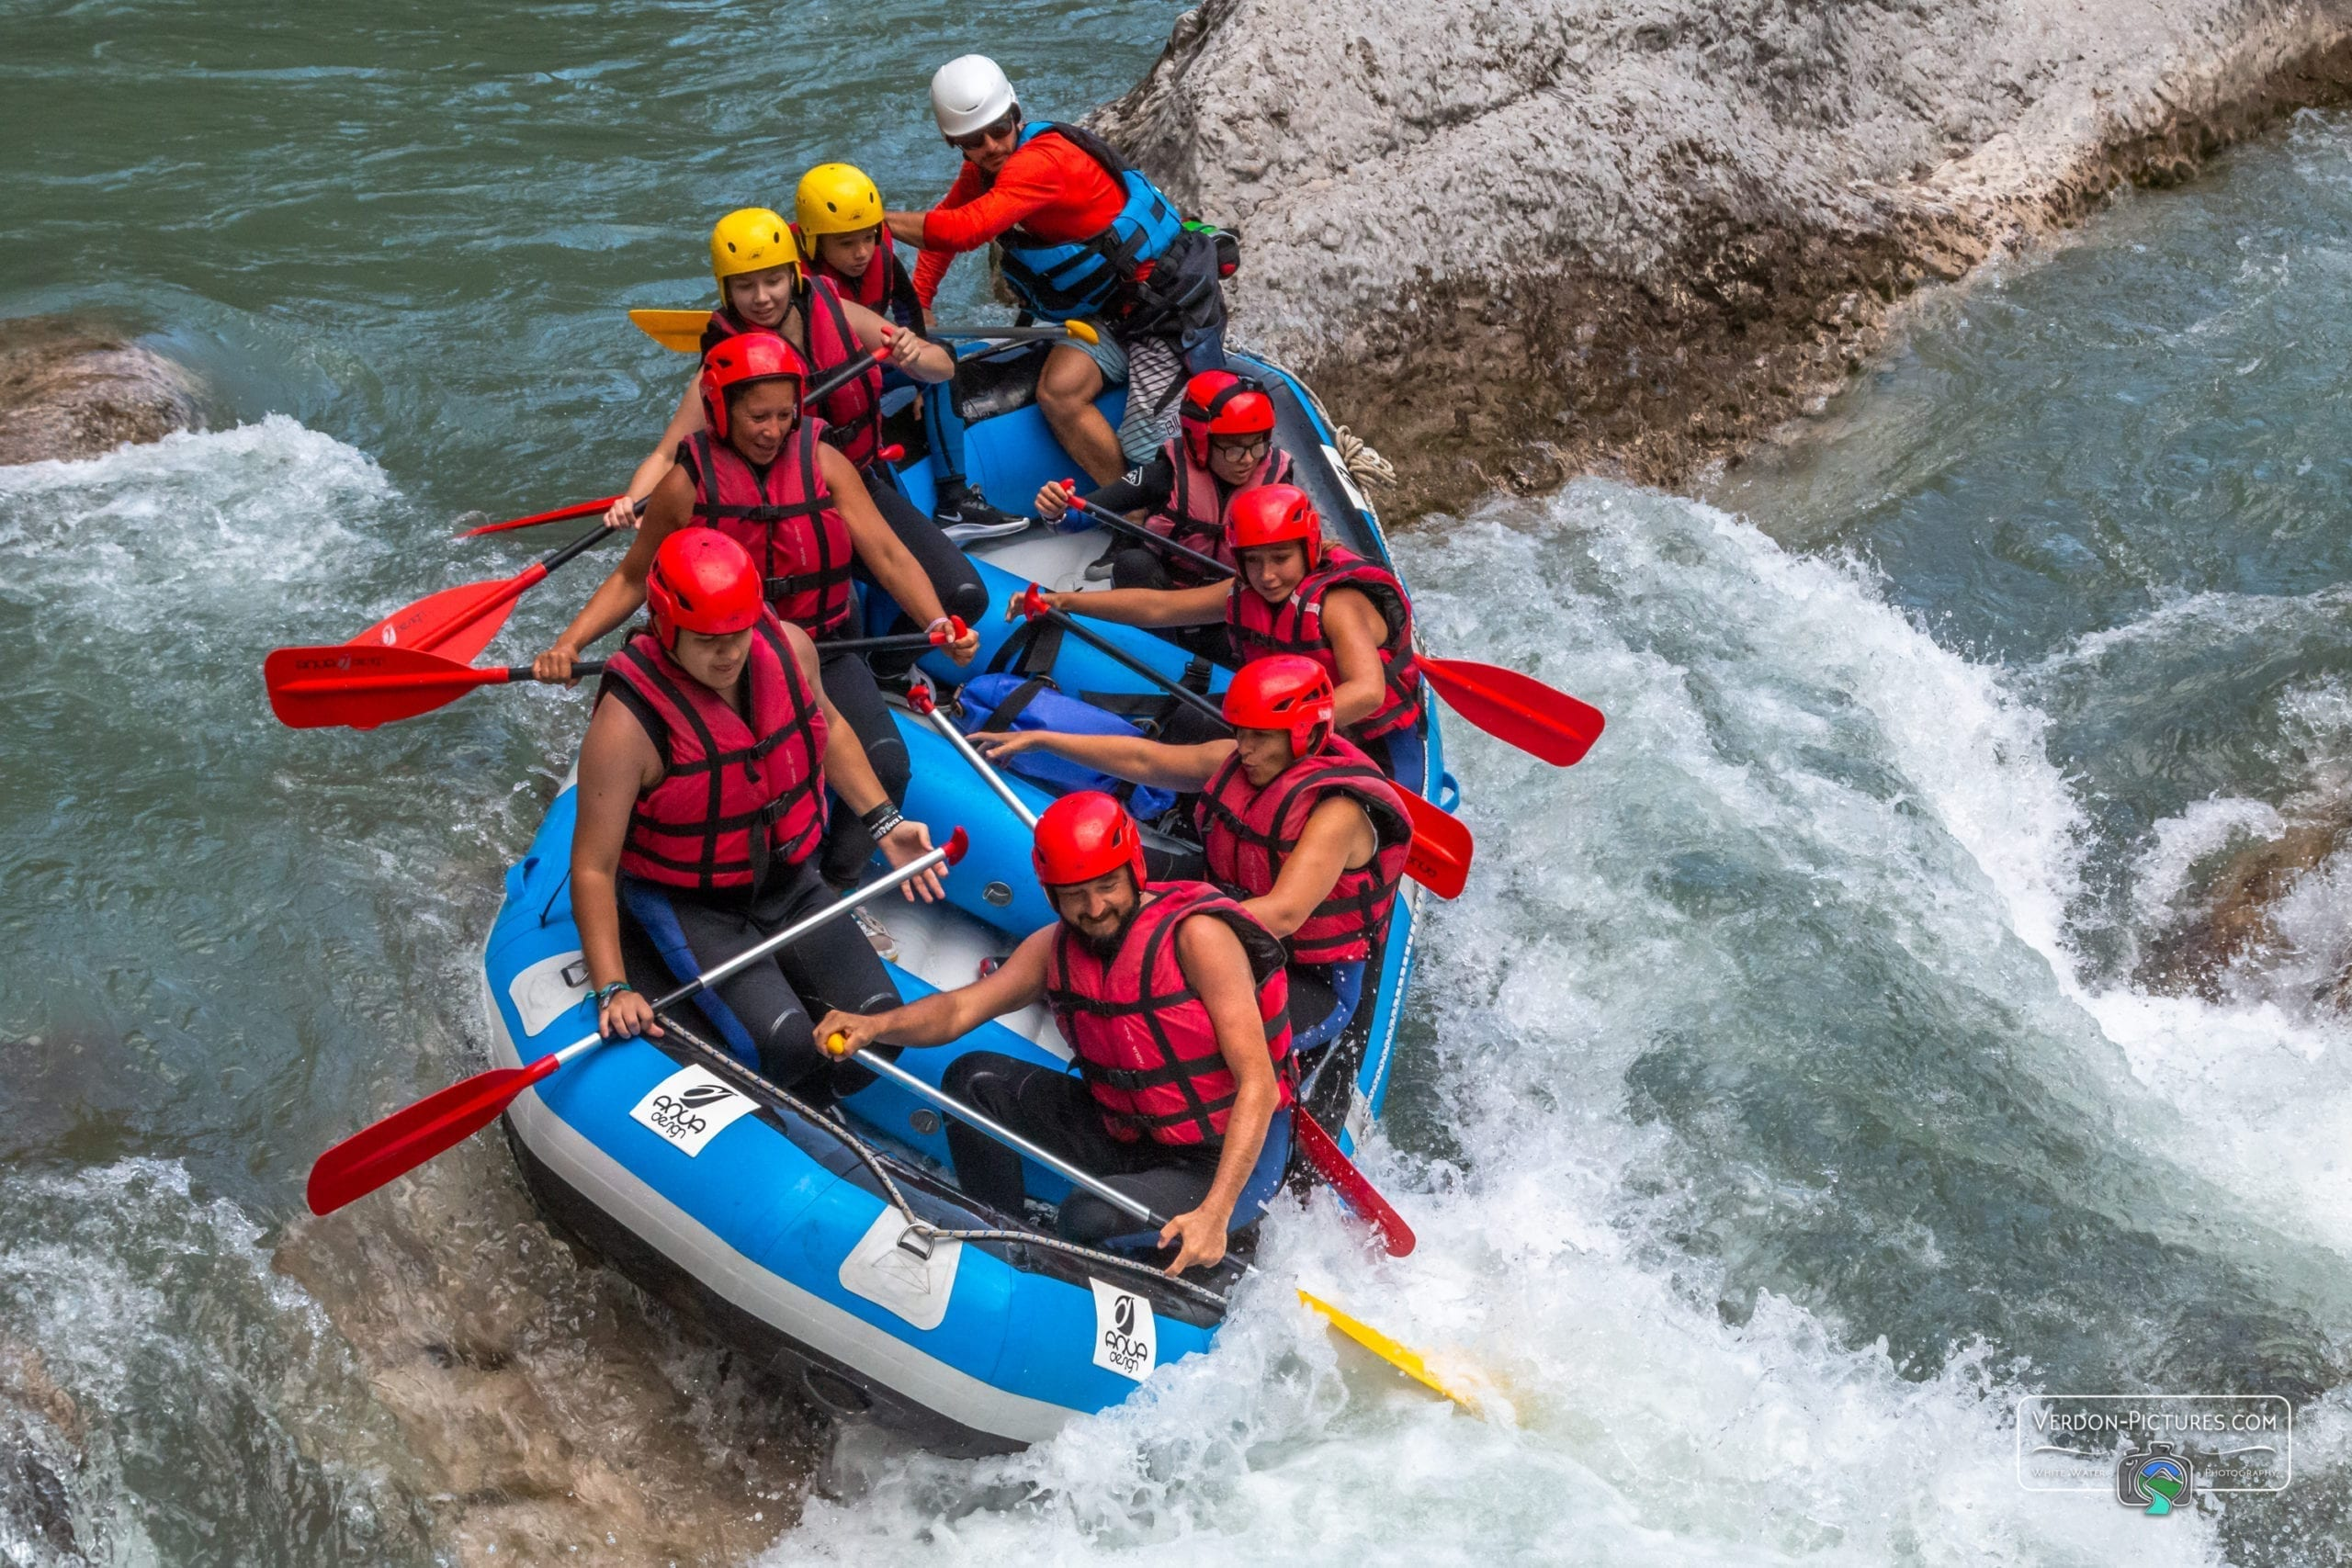 Rafting activity in the Gorges du Verdon